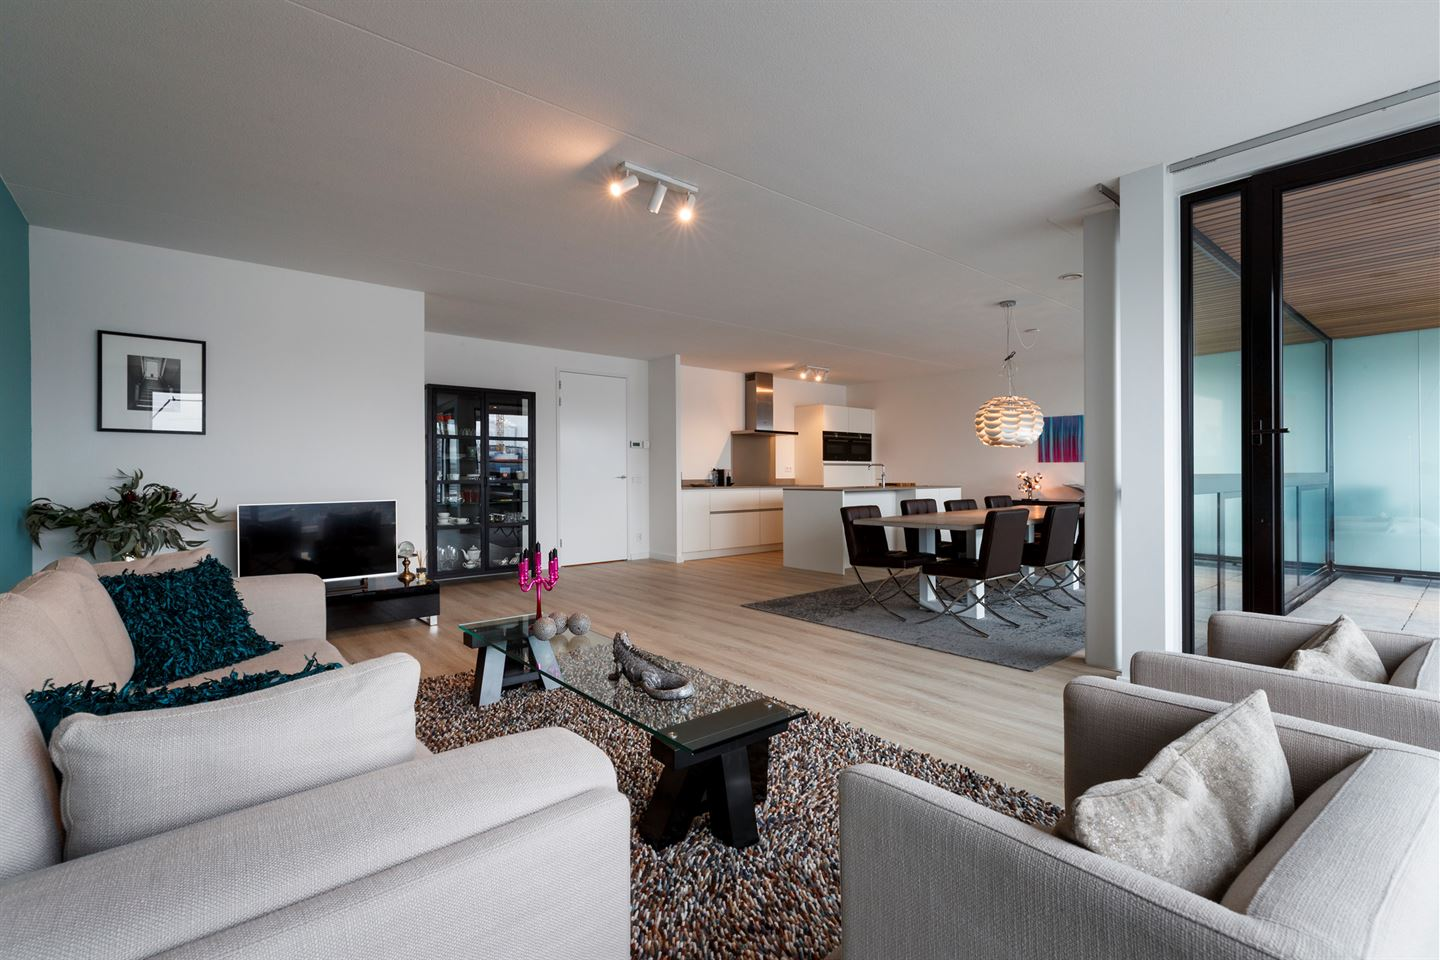 Interieur Design Hbo Amsterdam Apartment For Rent Pontsteiger 213 1014 Zp Amsterdam Funda